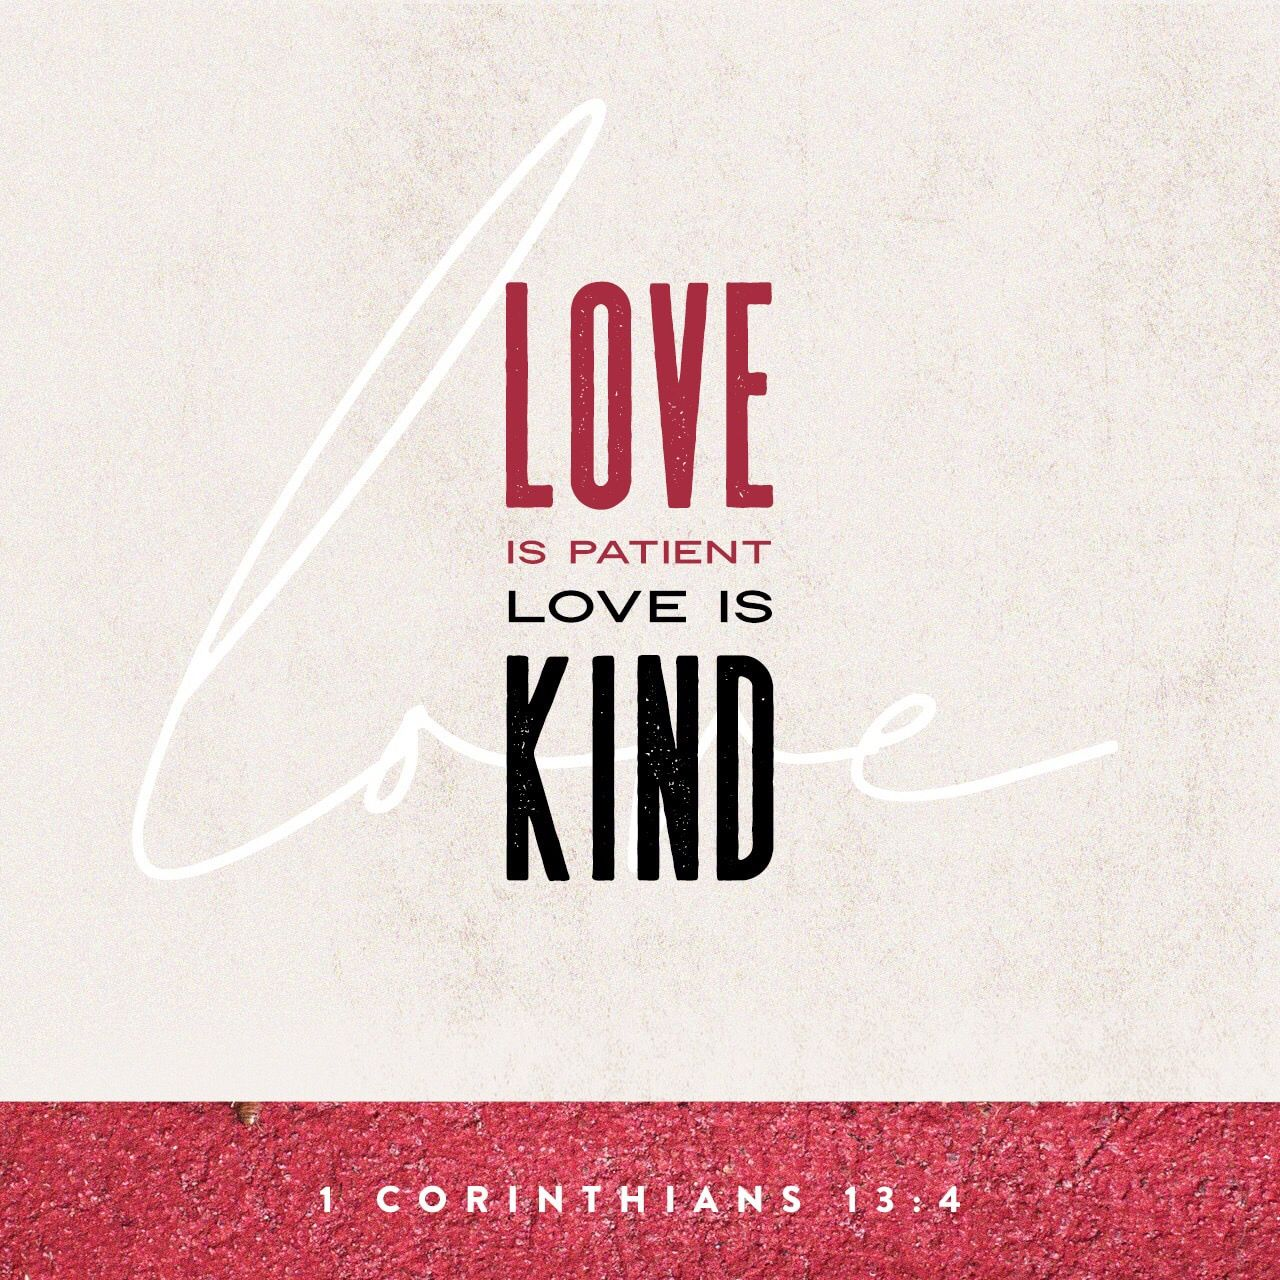 1 Corinthians‬ ‭1345‬ ‭NIV‬‬ Bible apps, Love does not